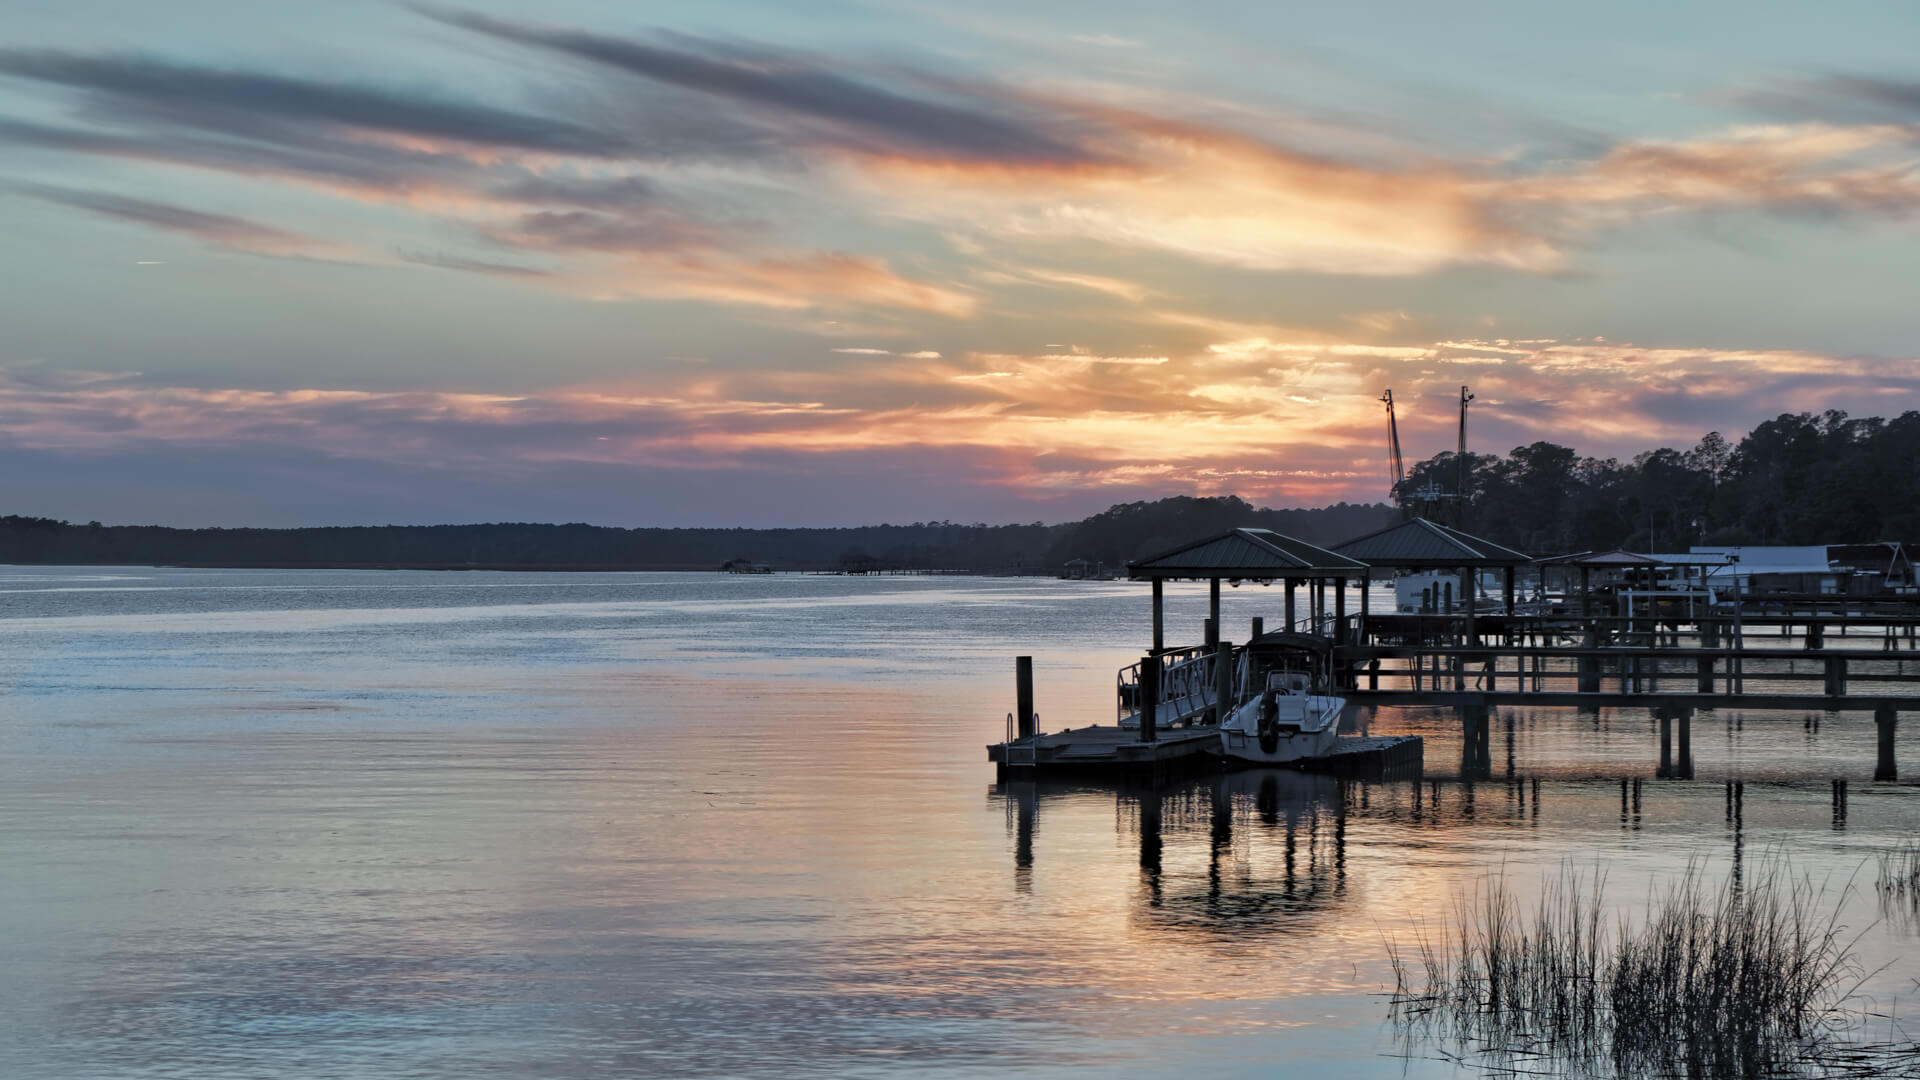 """Slide 41 of 51: Cost: Hotels from about $120 to $155 nightly; from $400 for the luxurious Montage Palmetto Bluff  You probably haven't heard of it, and that's exactly why Bluffton defines the concept of """"getaway."""" Antebellum homes, artisan shops and local eats are shaded by the mossy oak trees of the May River, where you can fish, kayak or just explore. It's little wonder the Huffington Post once called Bluffton the most """"Amazing Non-Beach Getaway"""" in the U.S."""